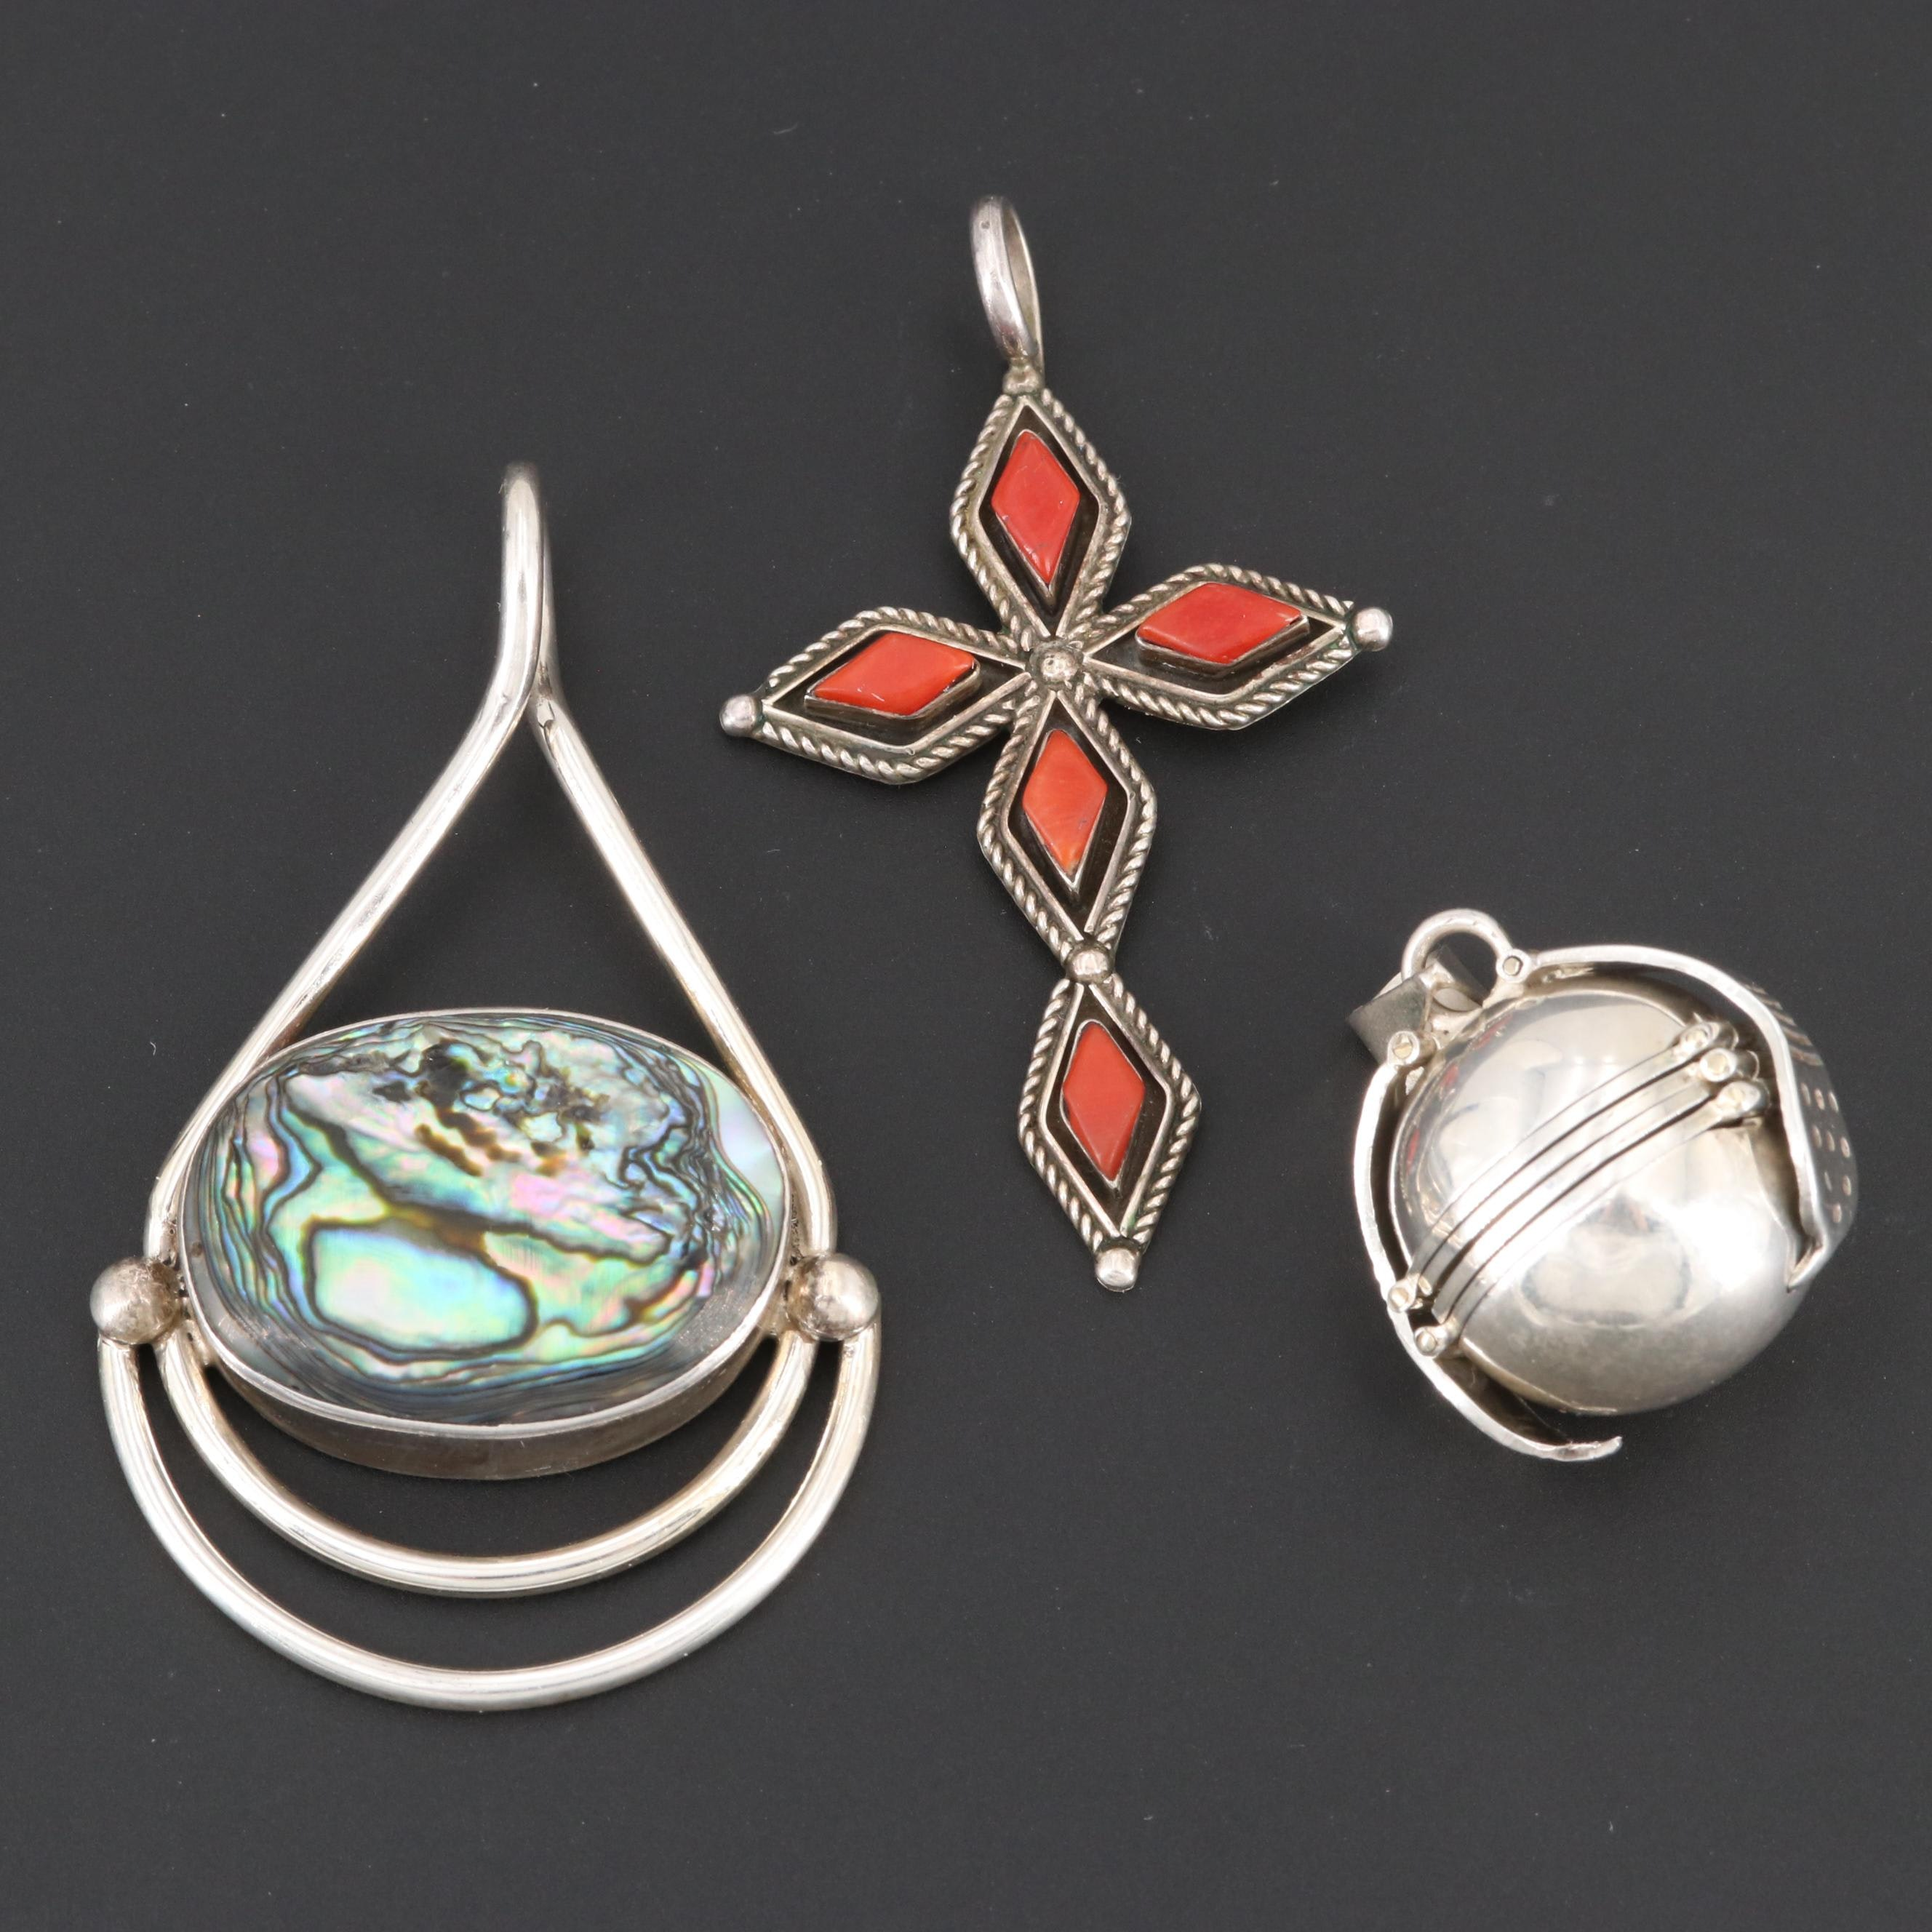 Southwestern Style Coral and Abalone Jewelry and Mexican Sterling Locket Pendant